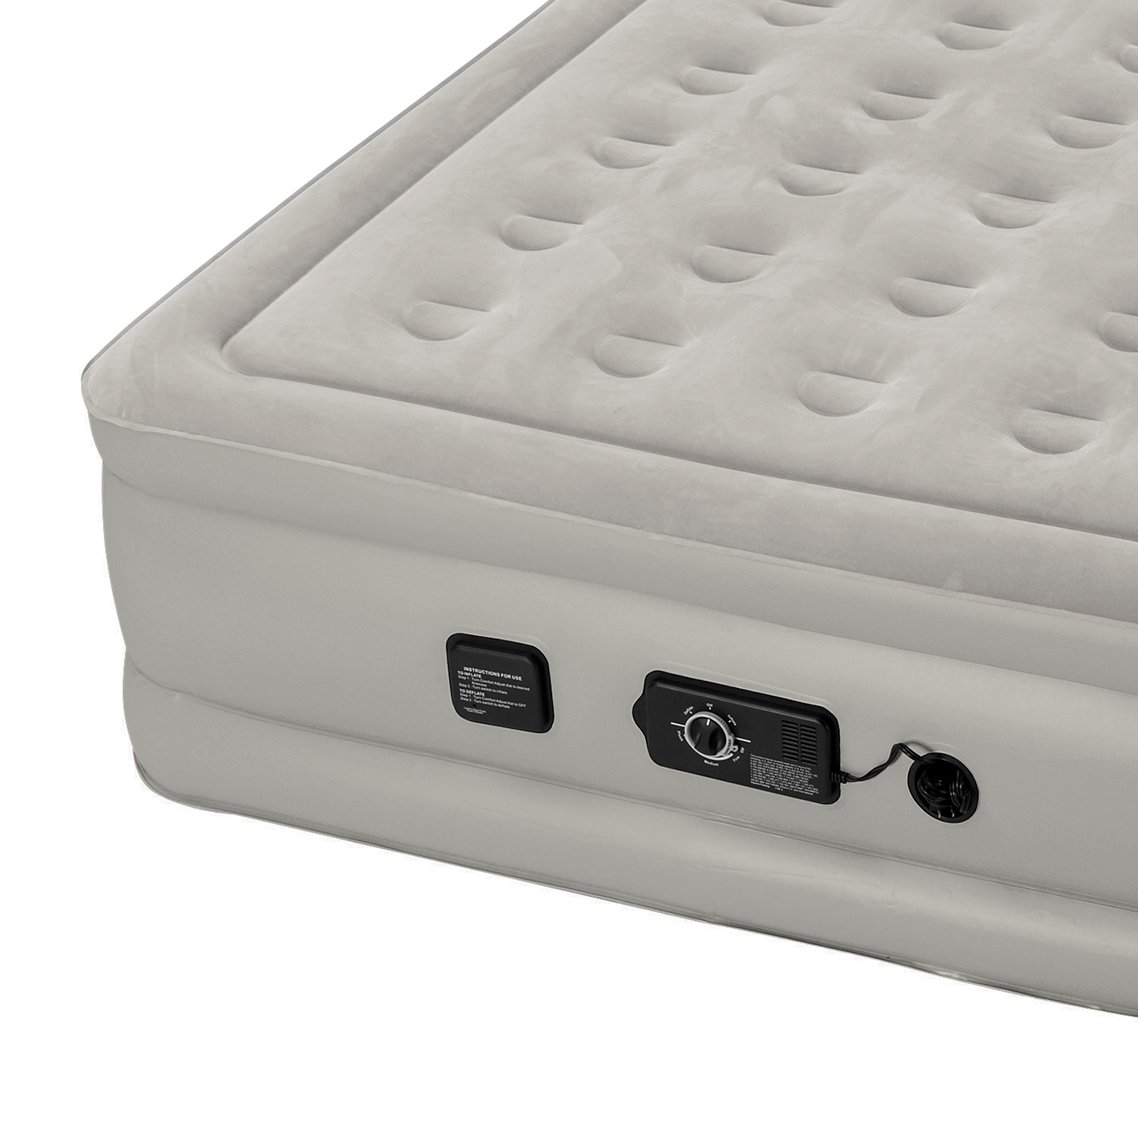 Insta-Bed Raised Air Mattress with Neverflat Pump, Grey, Full by Insta-Bed (Image #4)